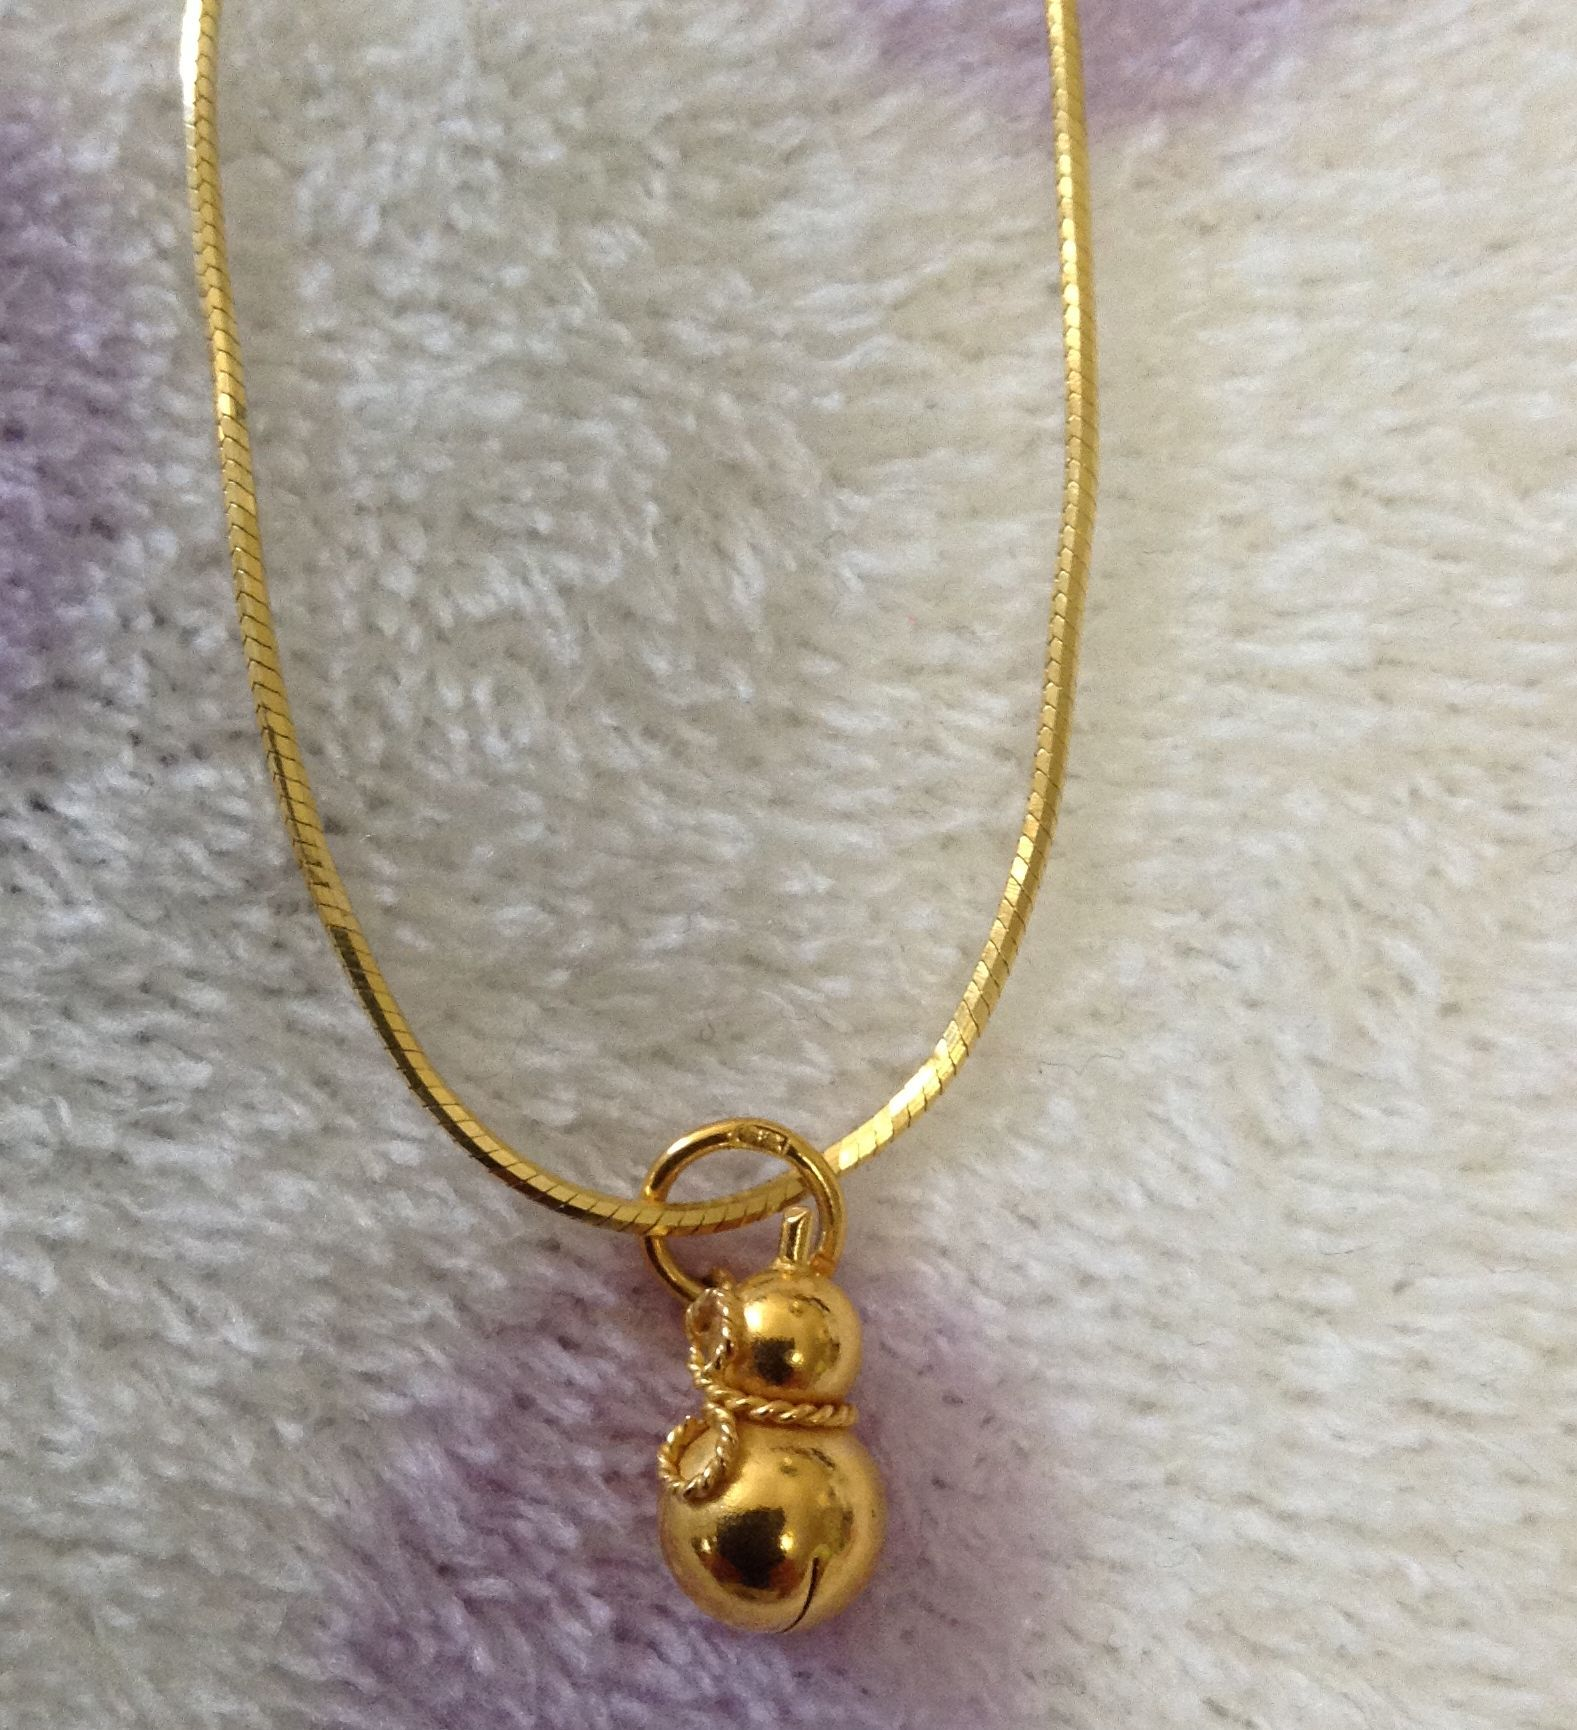 Poh heng singapore gold gourd pendant jewelry for Heng kunthea jewelry shop